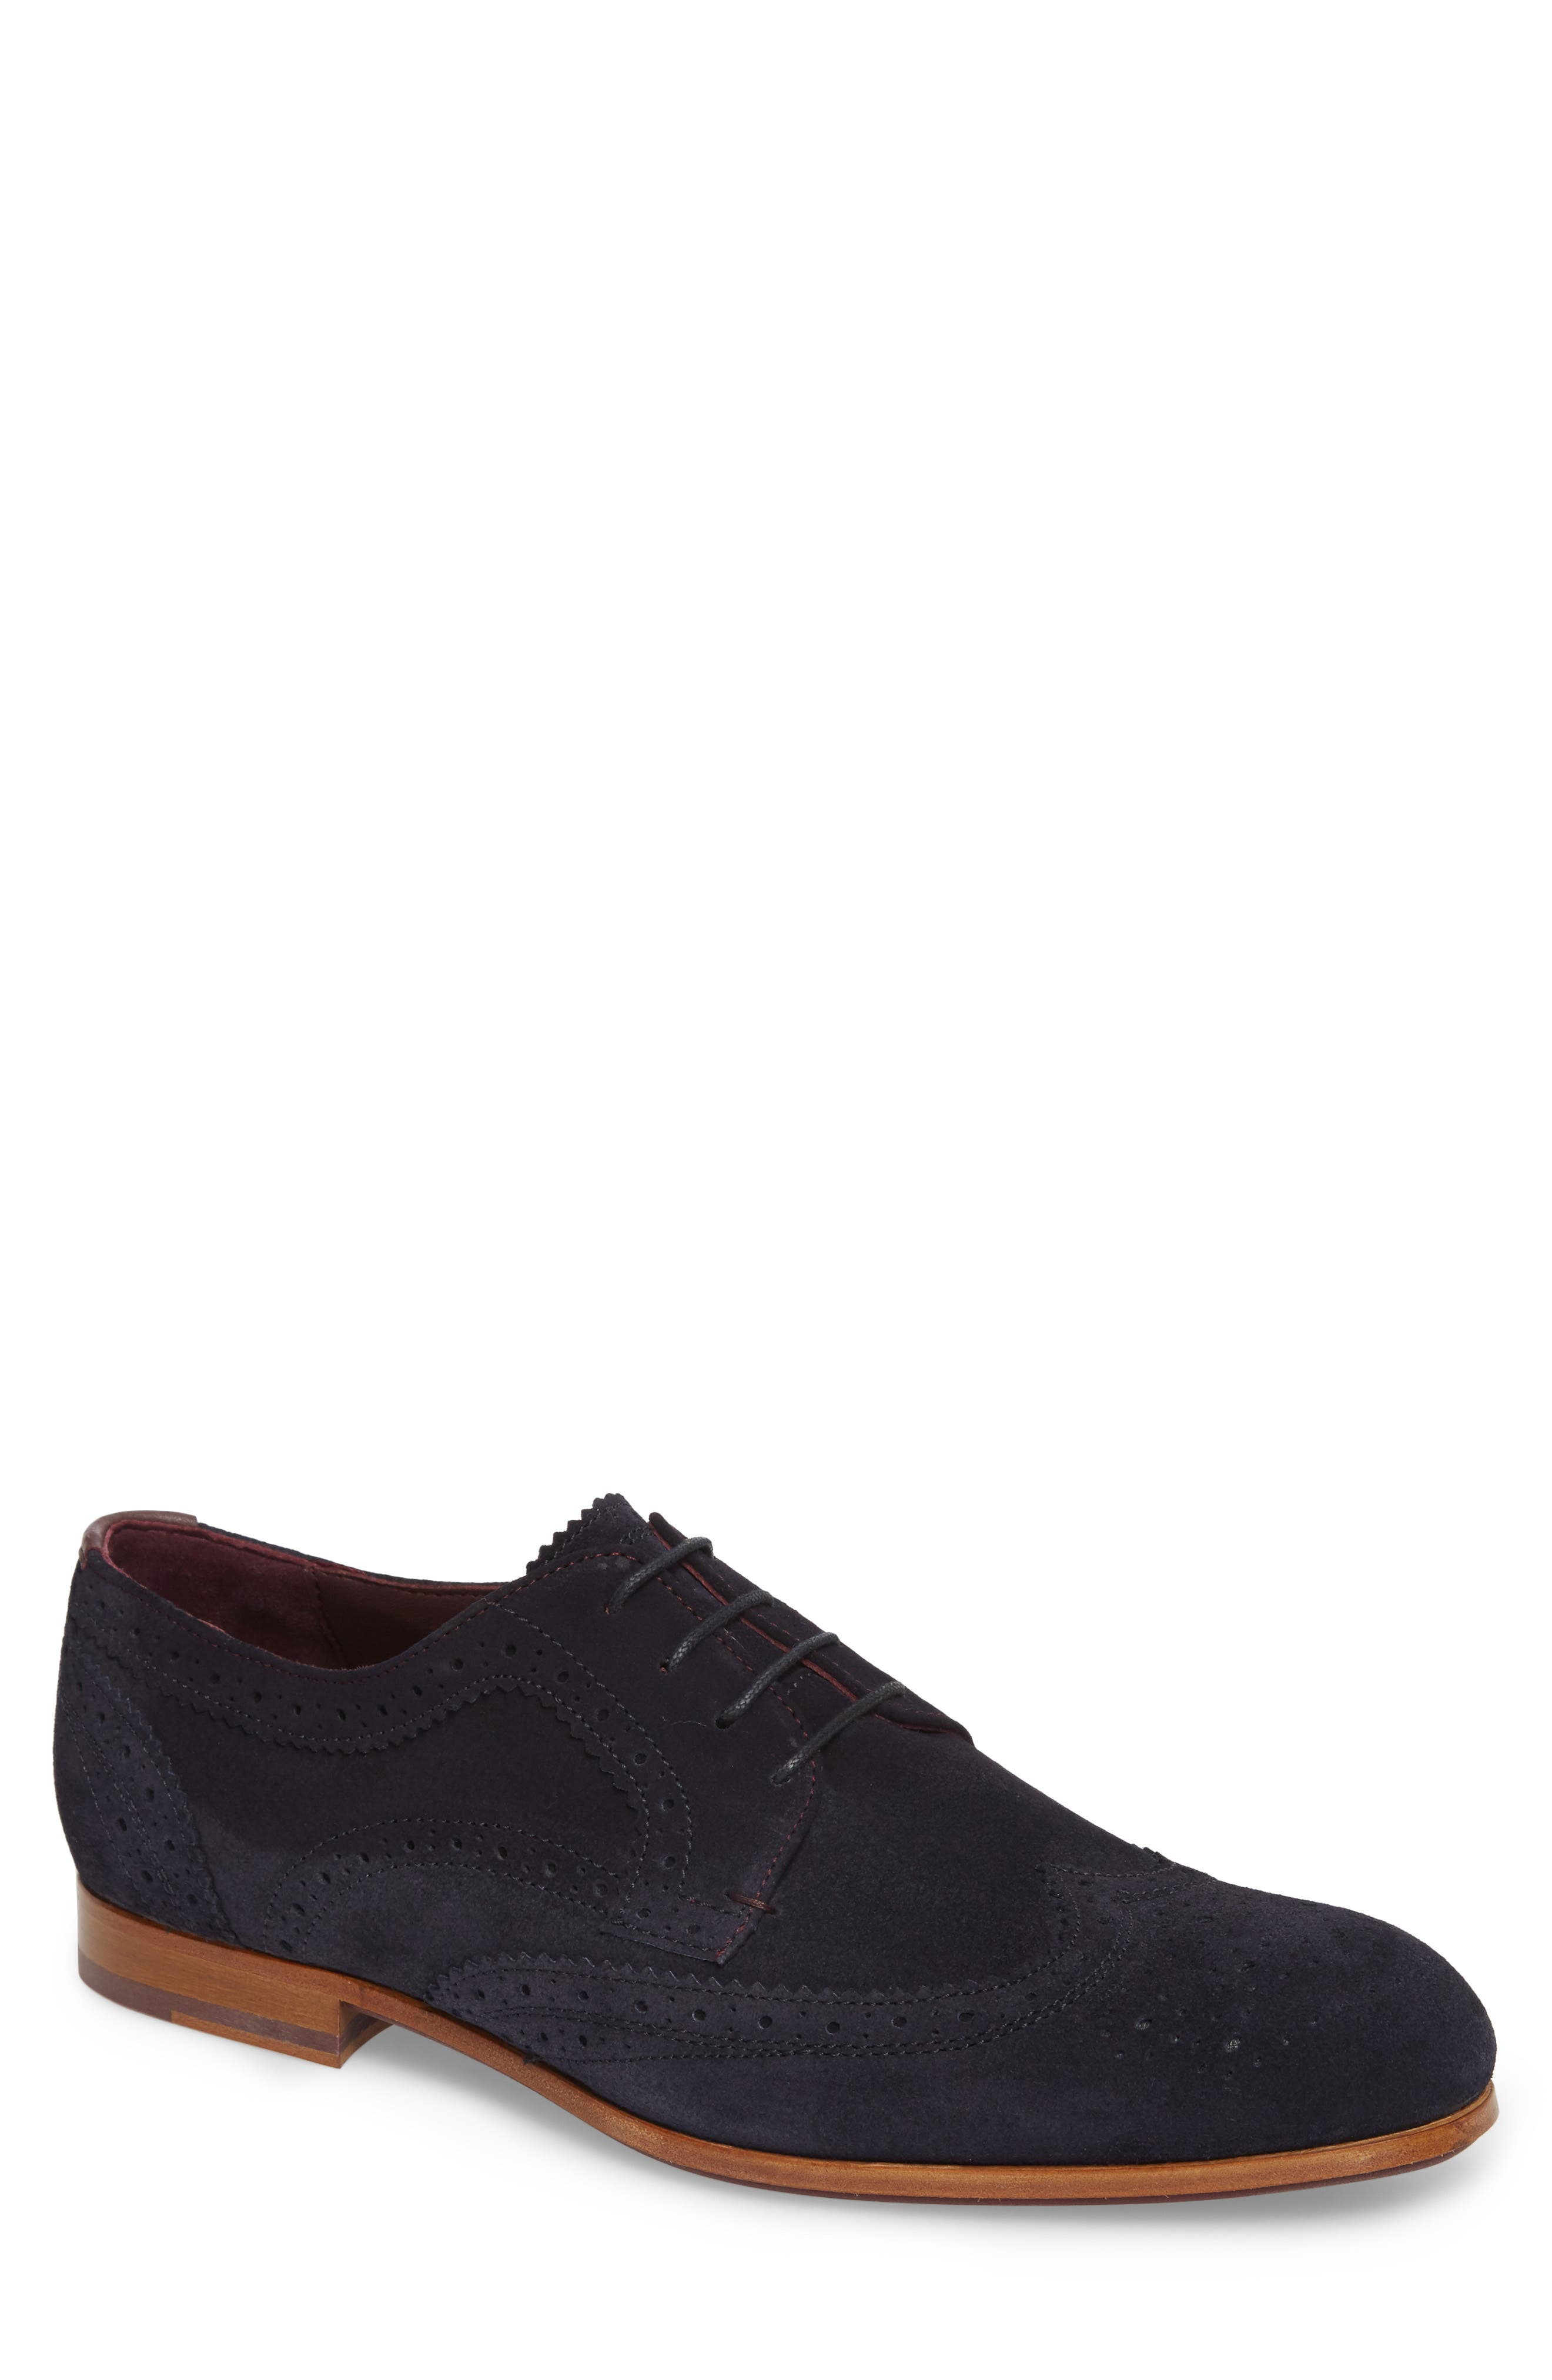 Ted Baker Men's Granet Wingtip